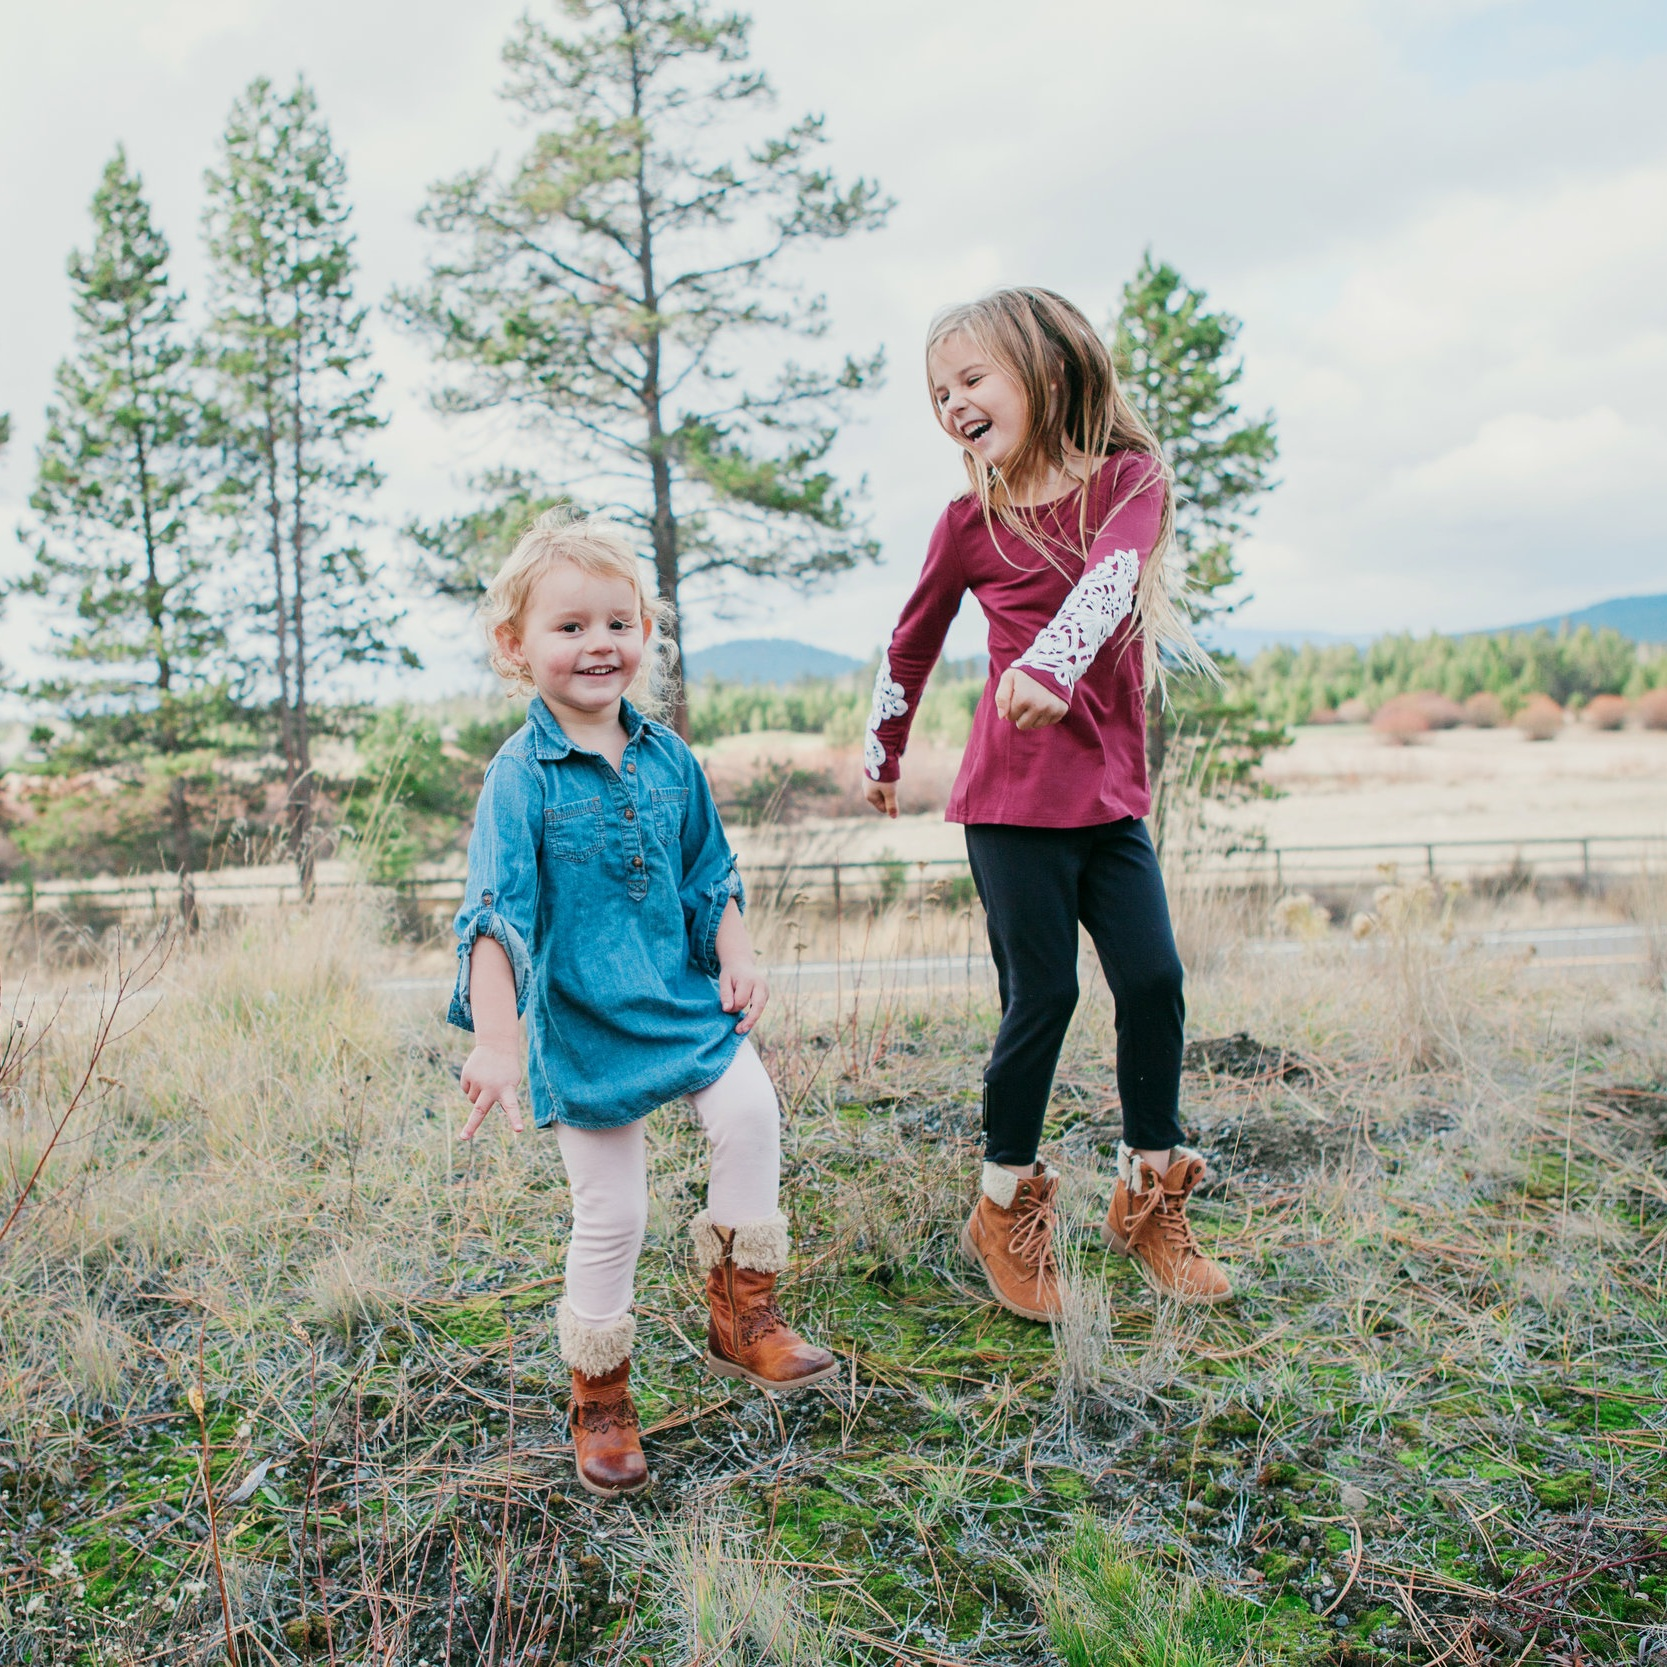 HAPPY DANCING because The Suitcase Studio is offering a SUMMER SPECIAL for family photos in Bend, OR.